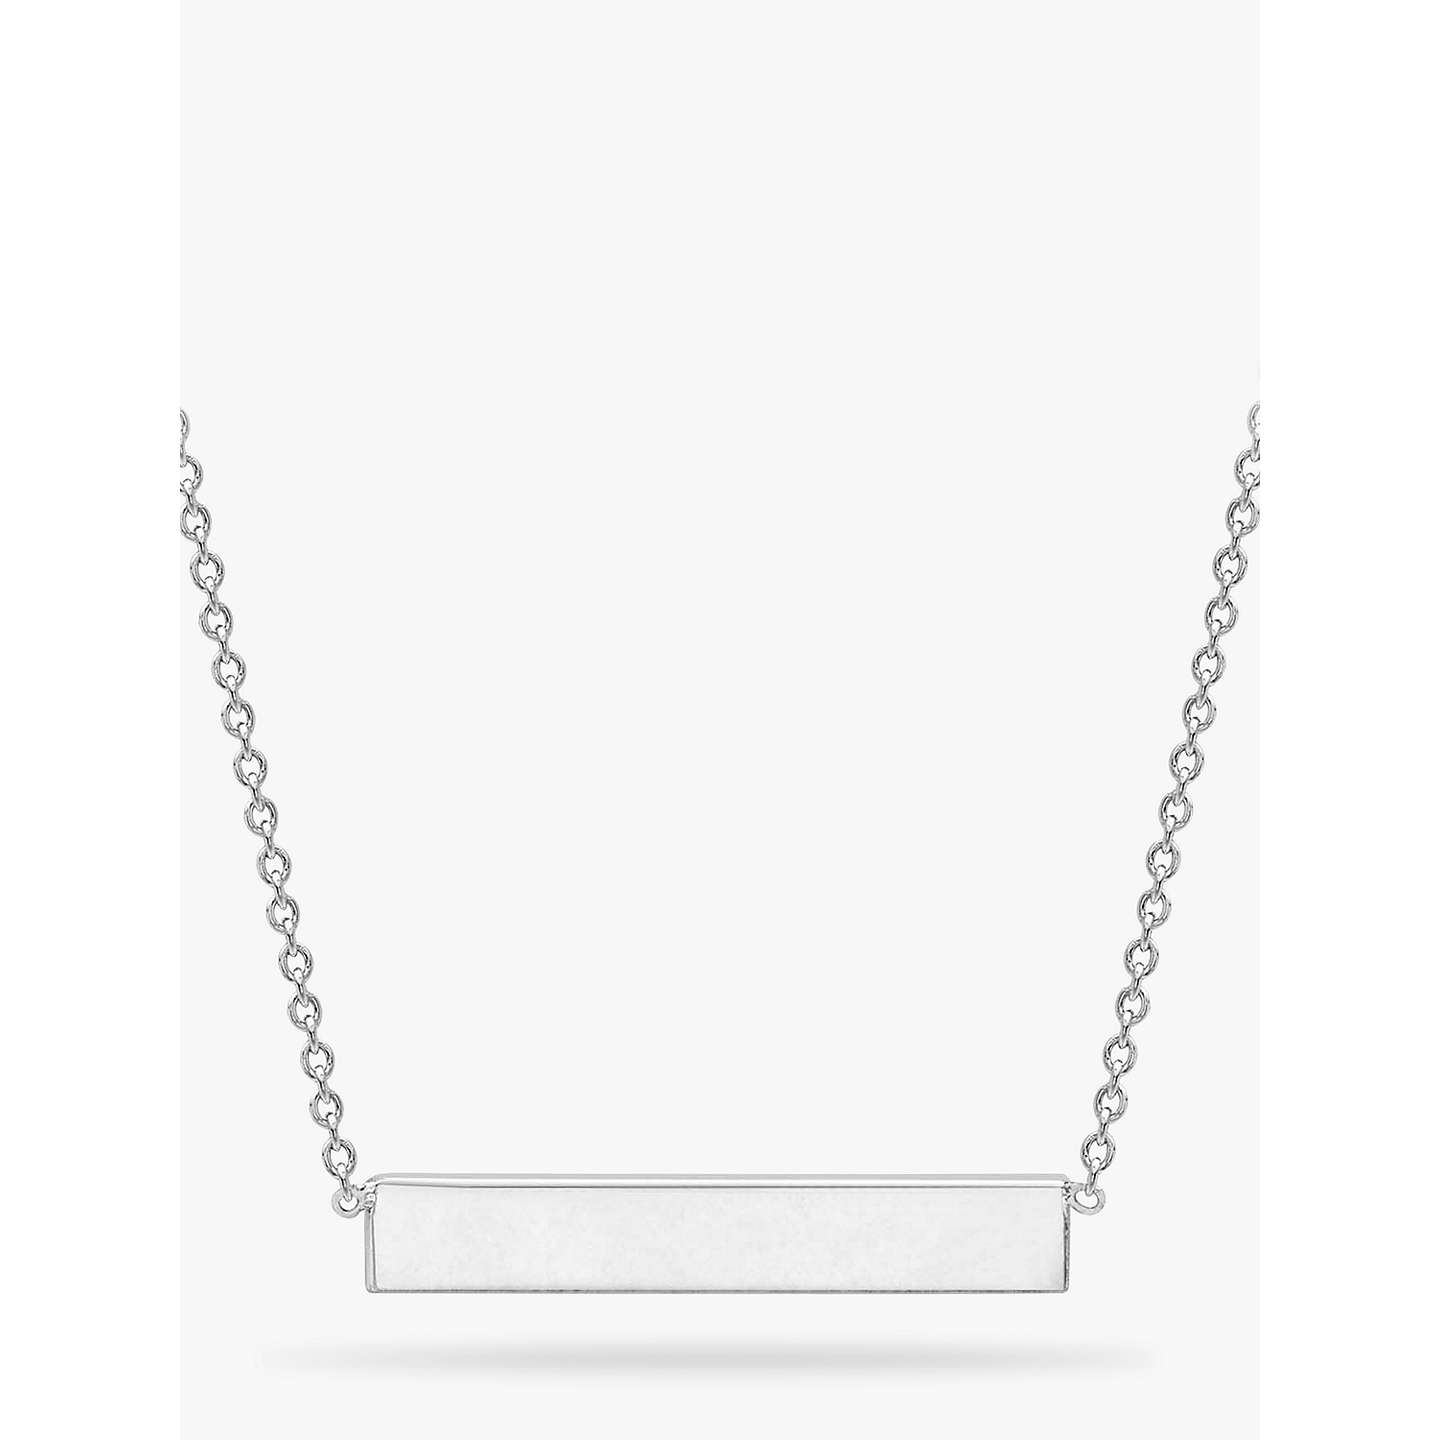 BuyIBB Personalised Small Horizontal Bar Initial Pendant Necklace, Silver Online at johnlewis.com